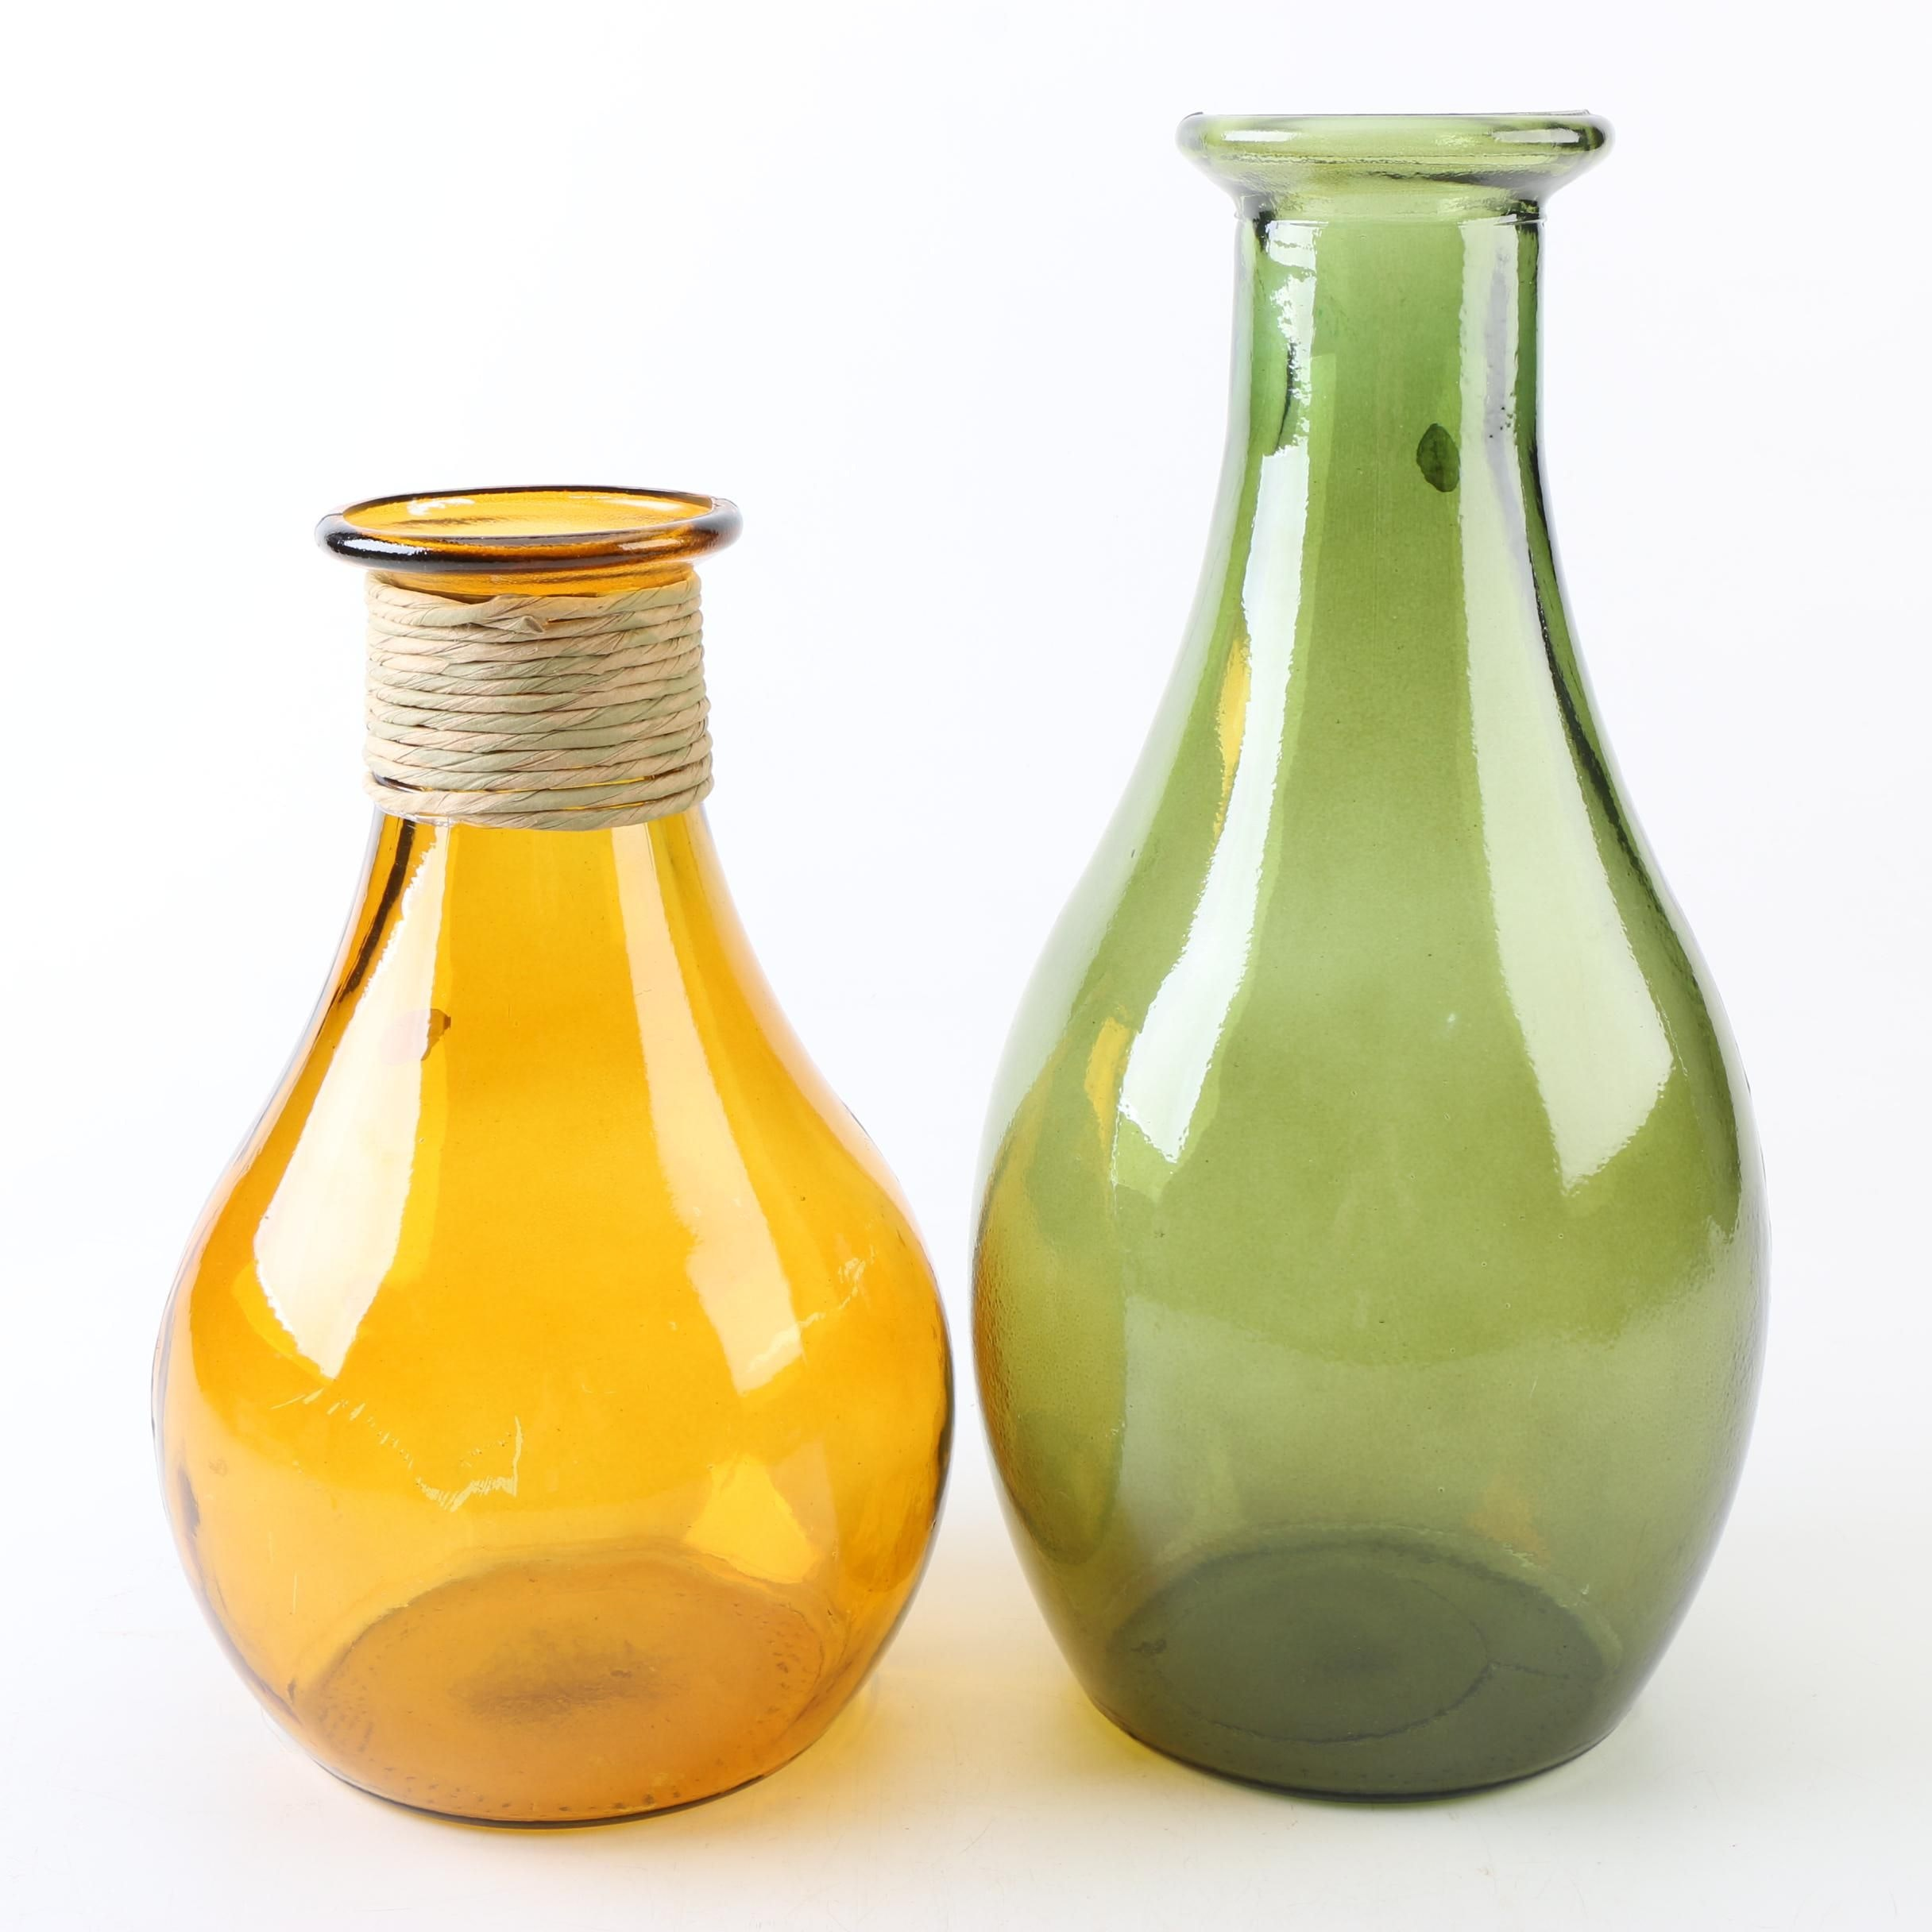 San Miguel Spanish Recycled Glass Vases